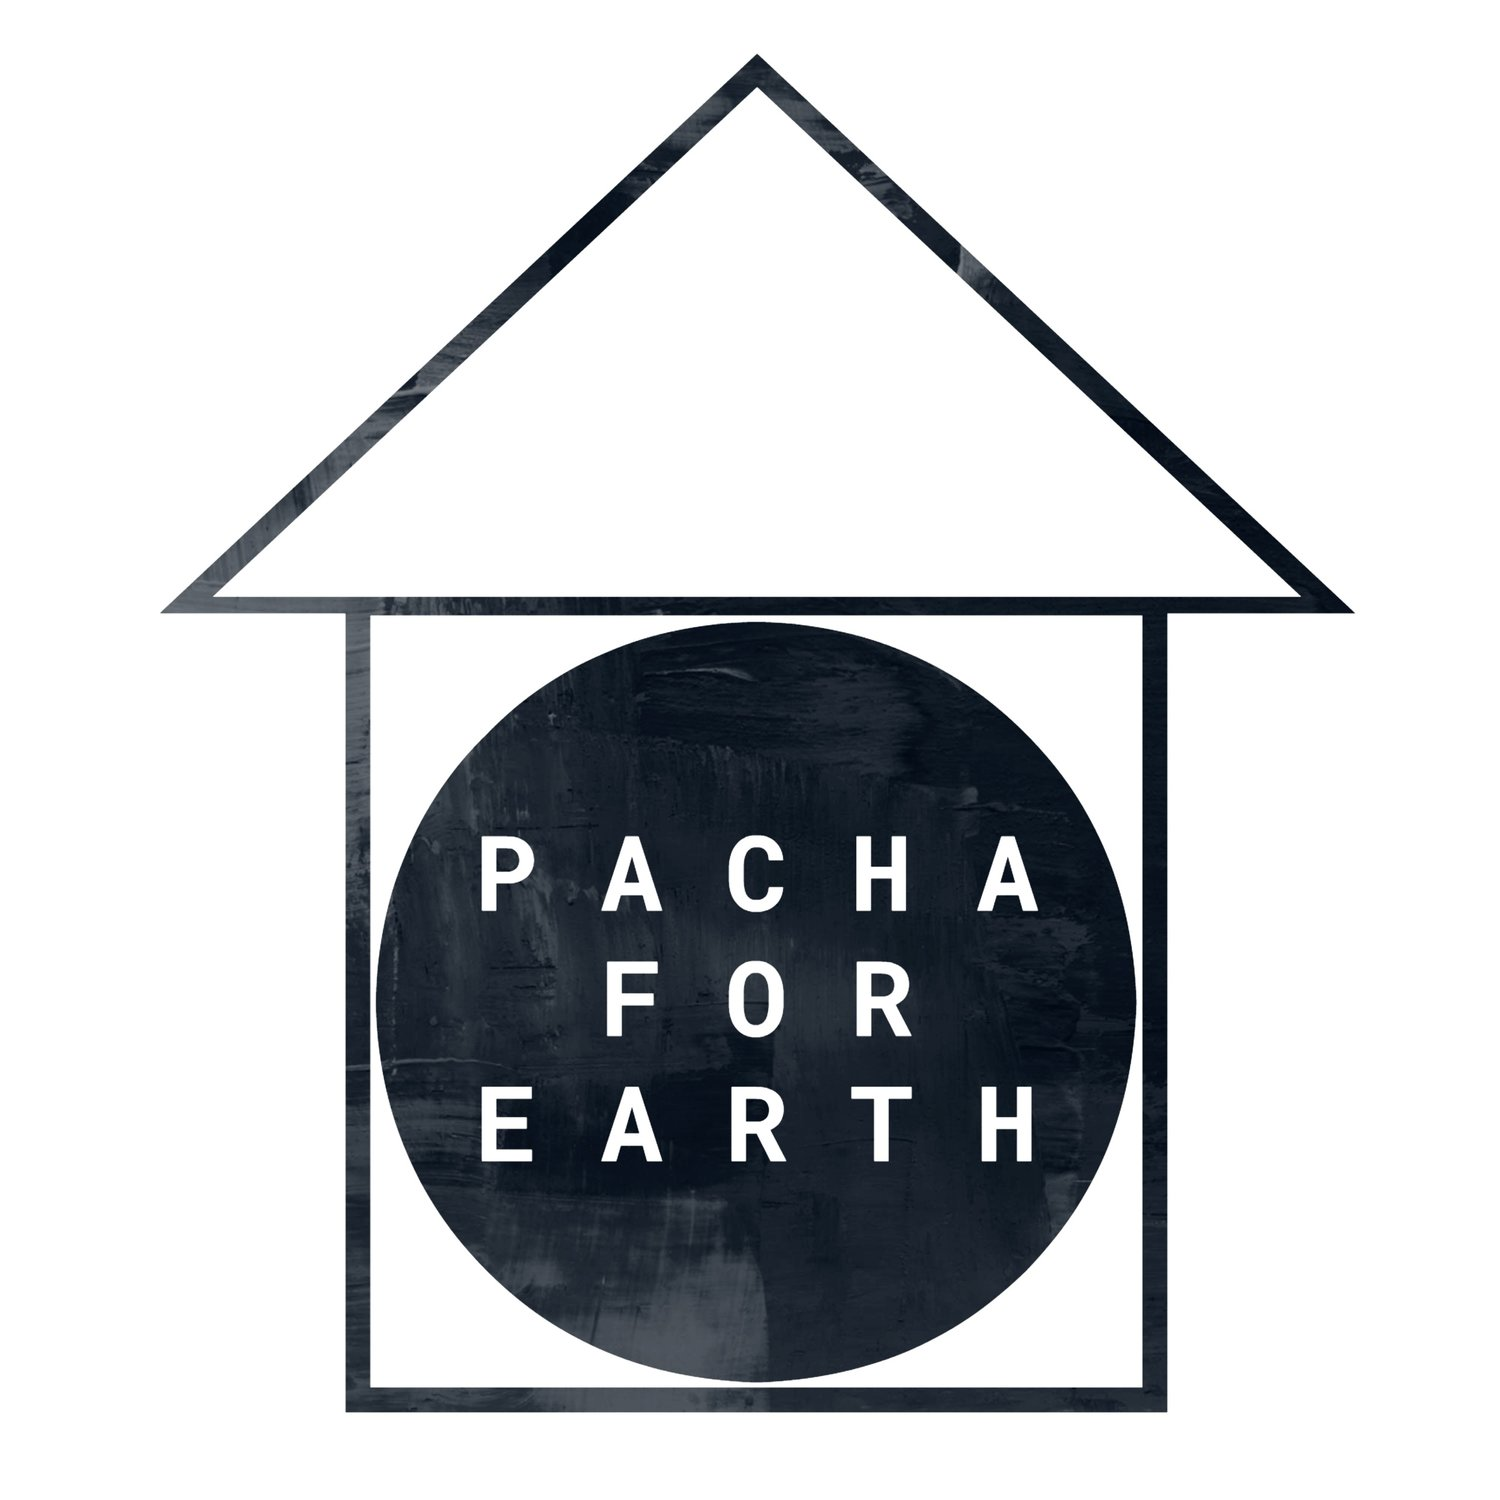 PACHA FOR EARTH